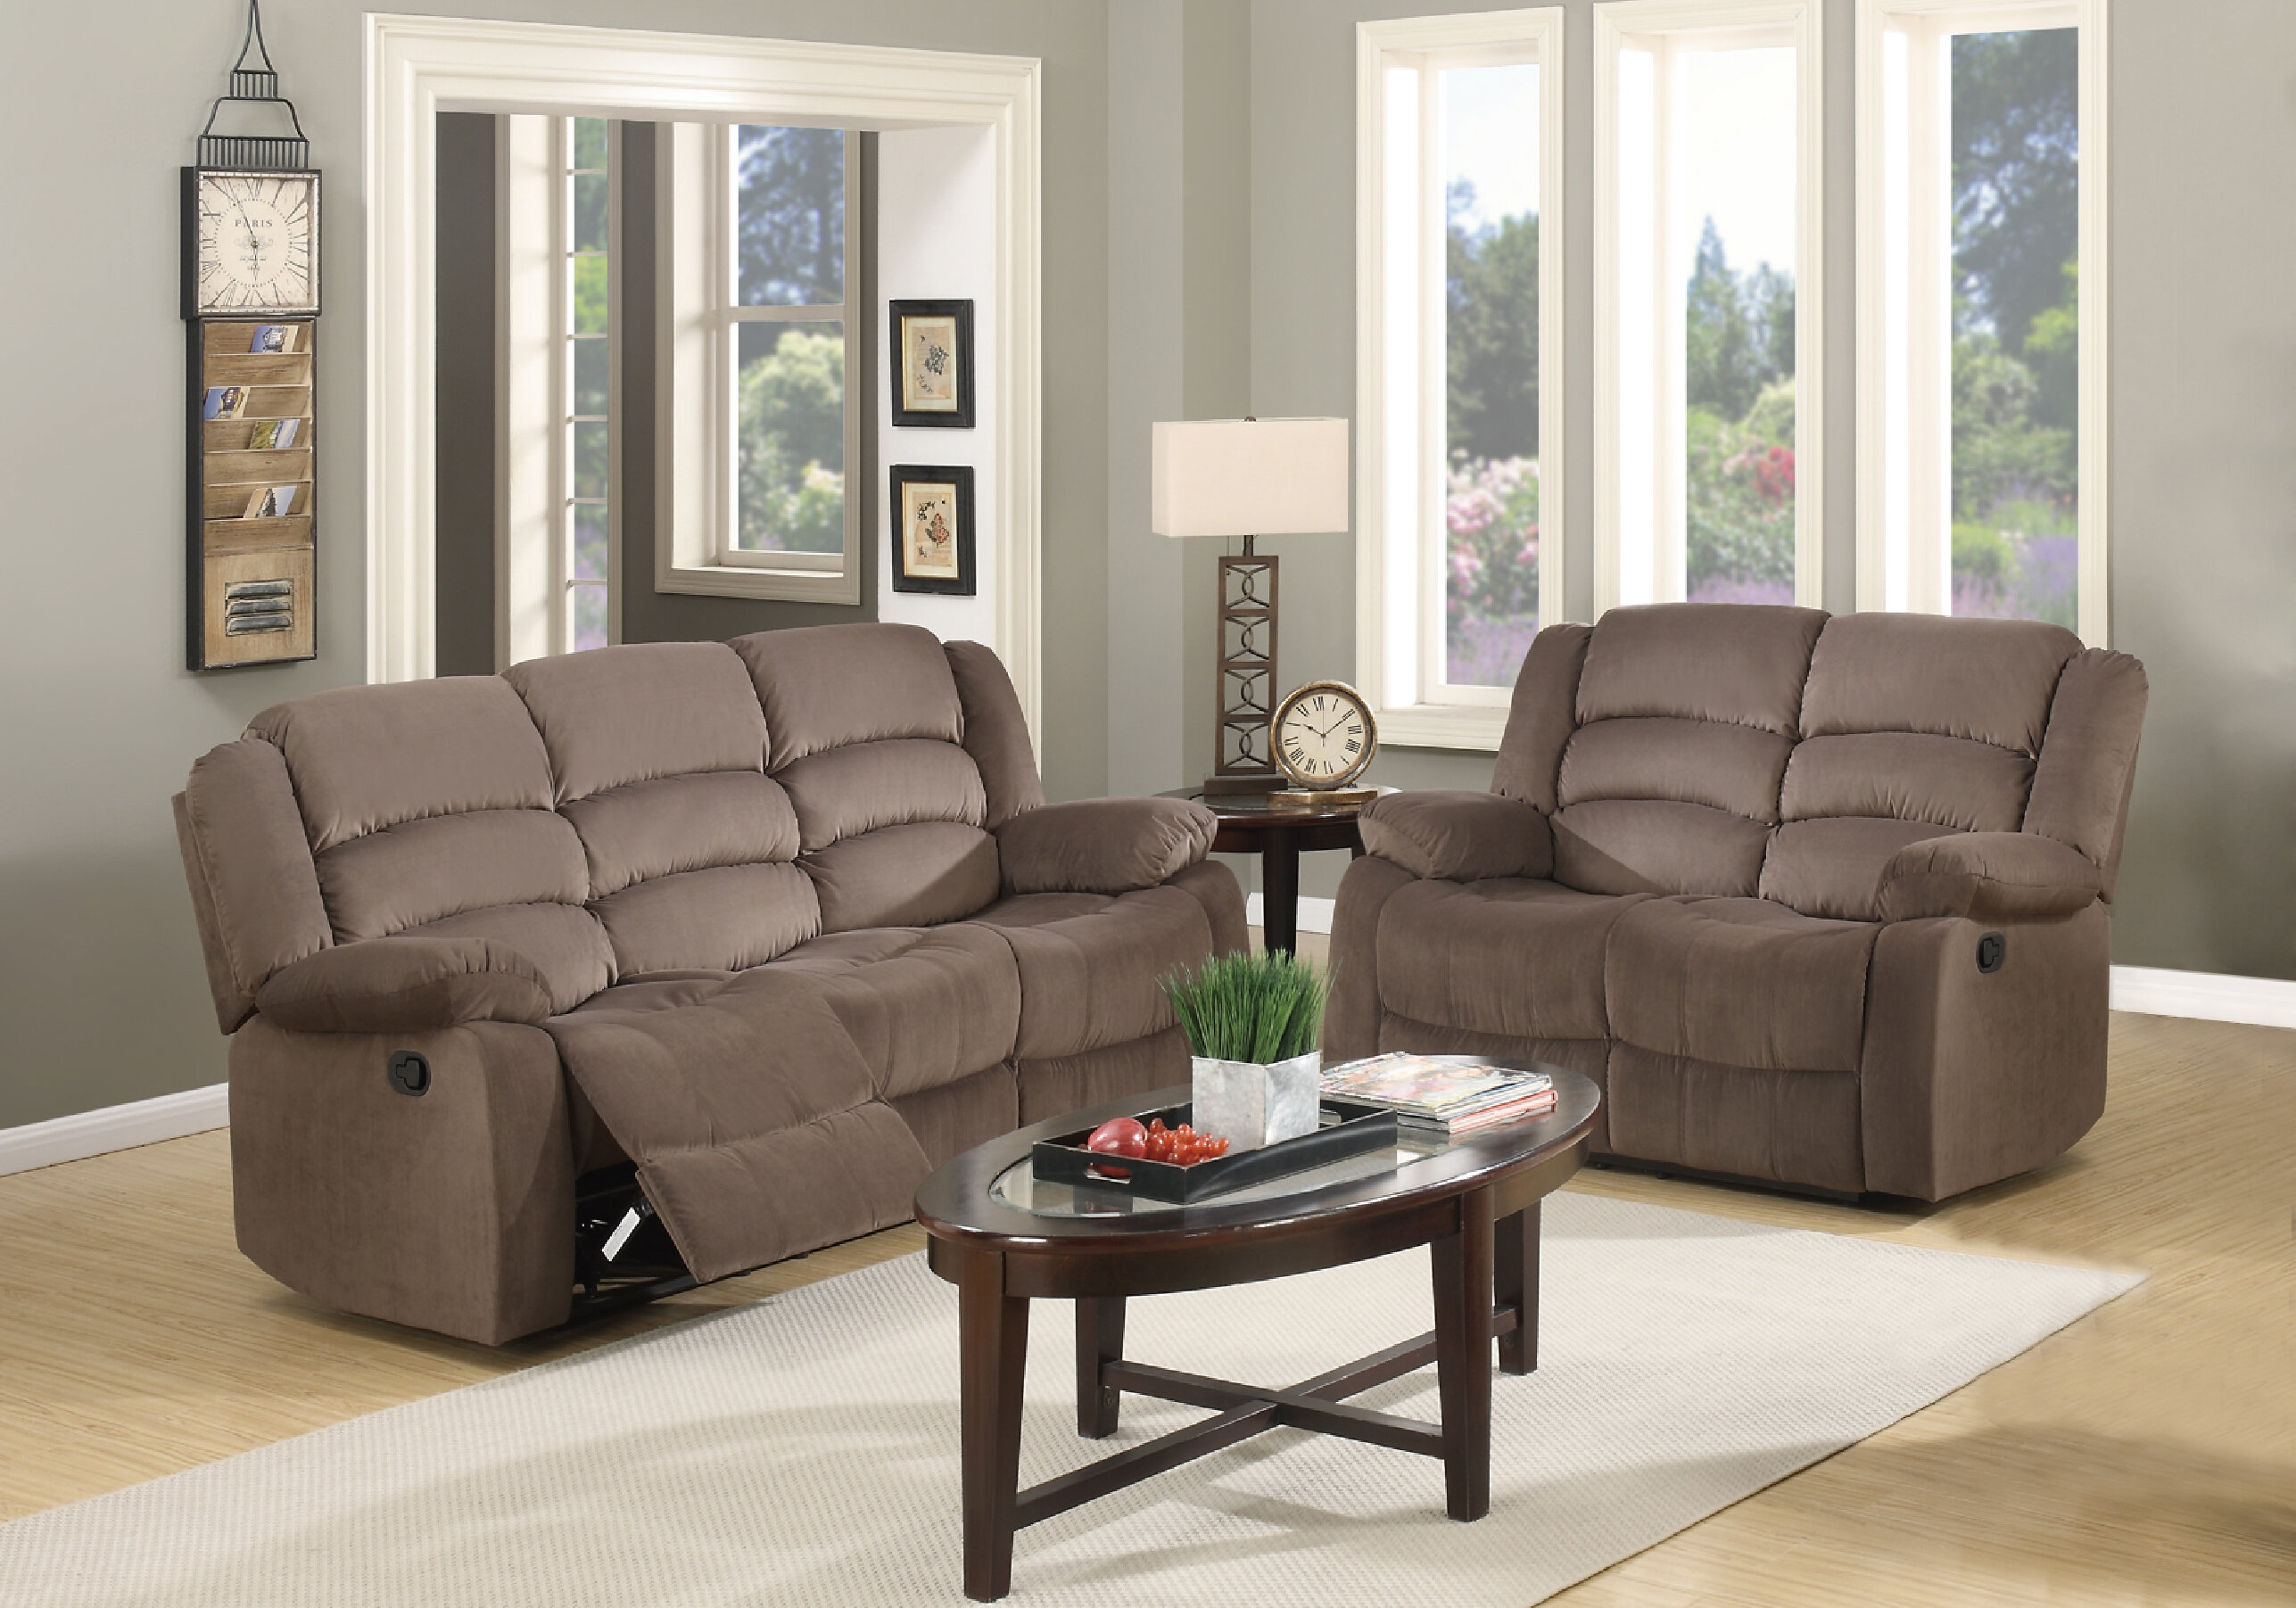 Fallon Reclining 2 Piece Living Room Set